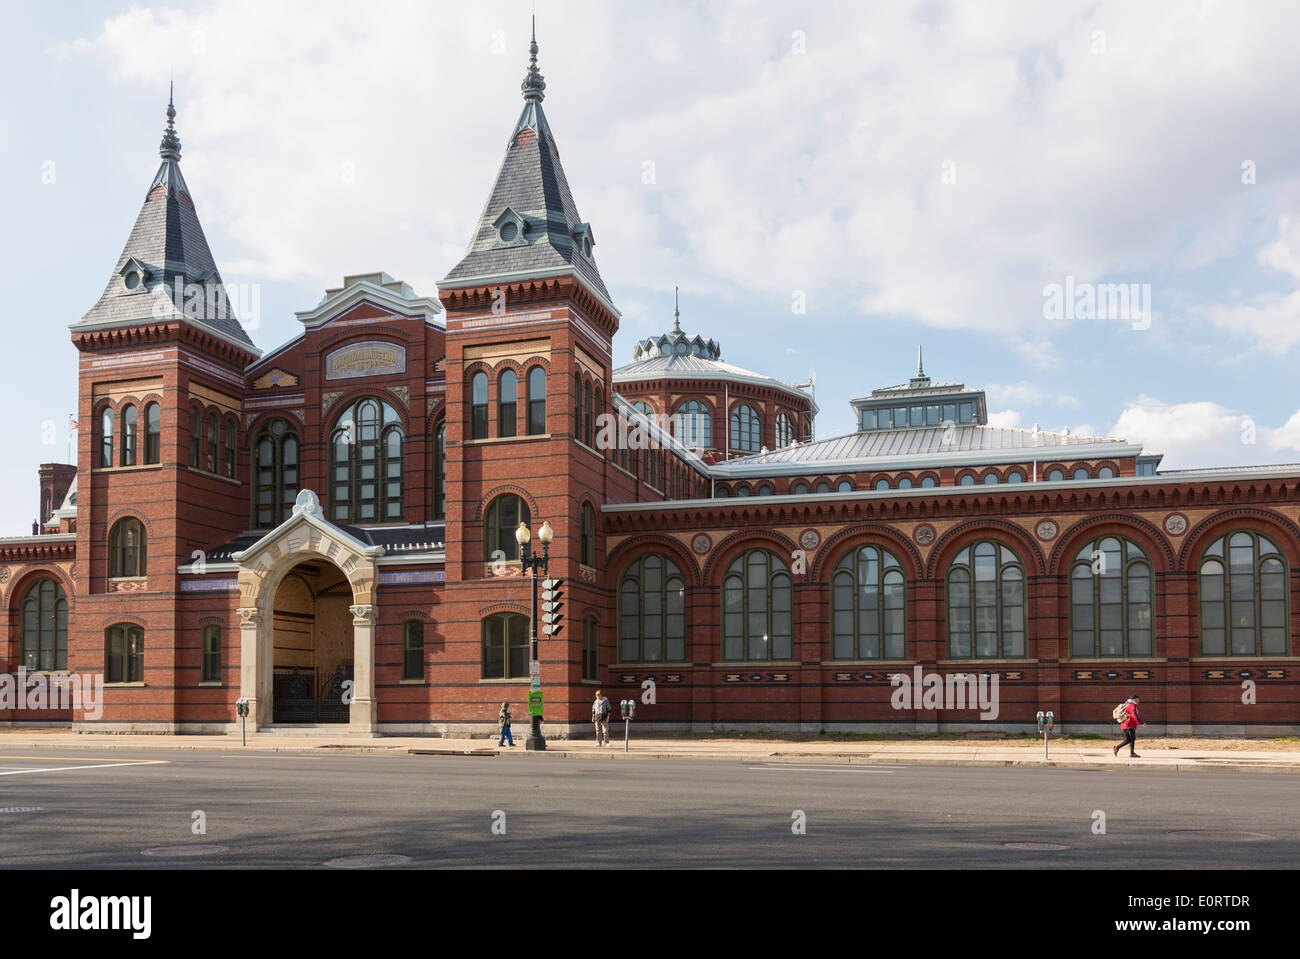 Exterior of Arts and Industries building of Smithsonian Institution in Washington DC, USA - Stock Image